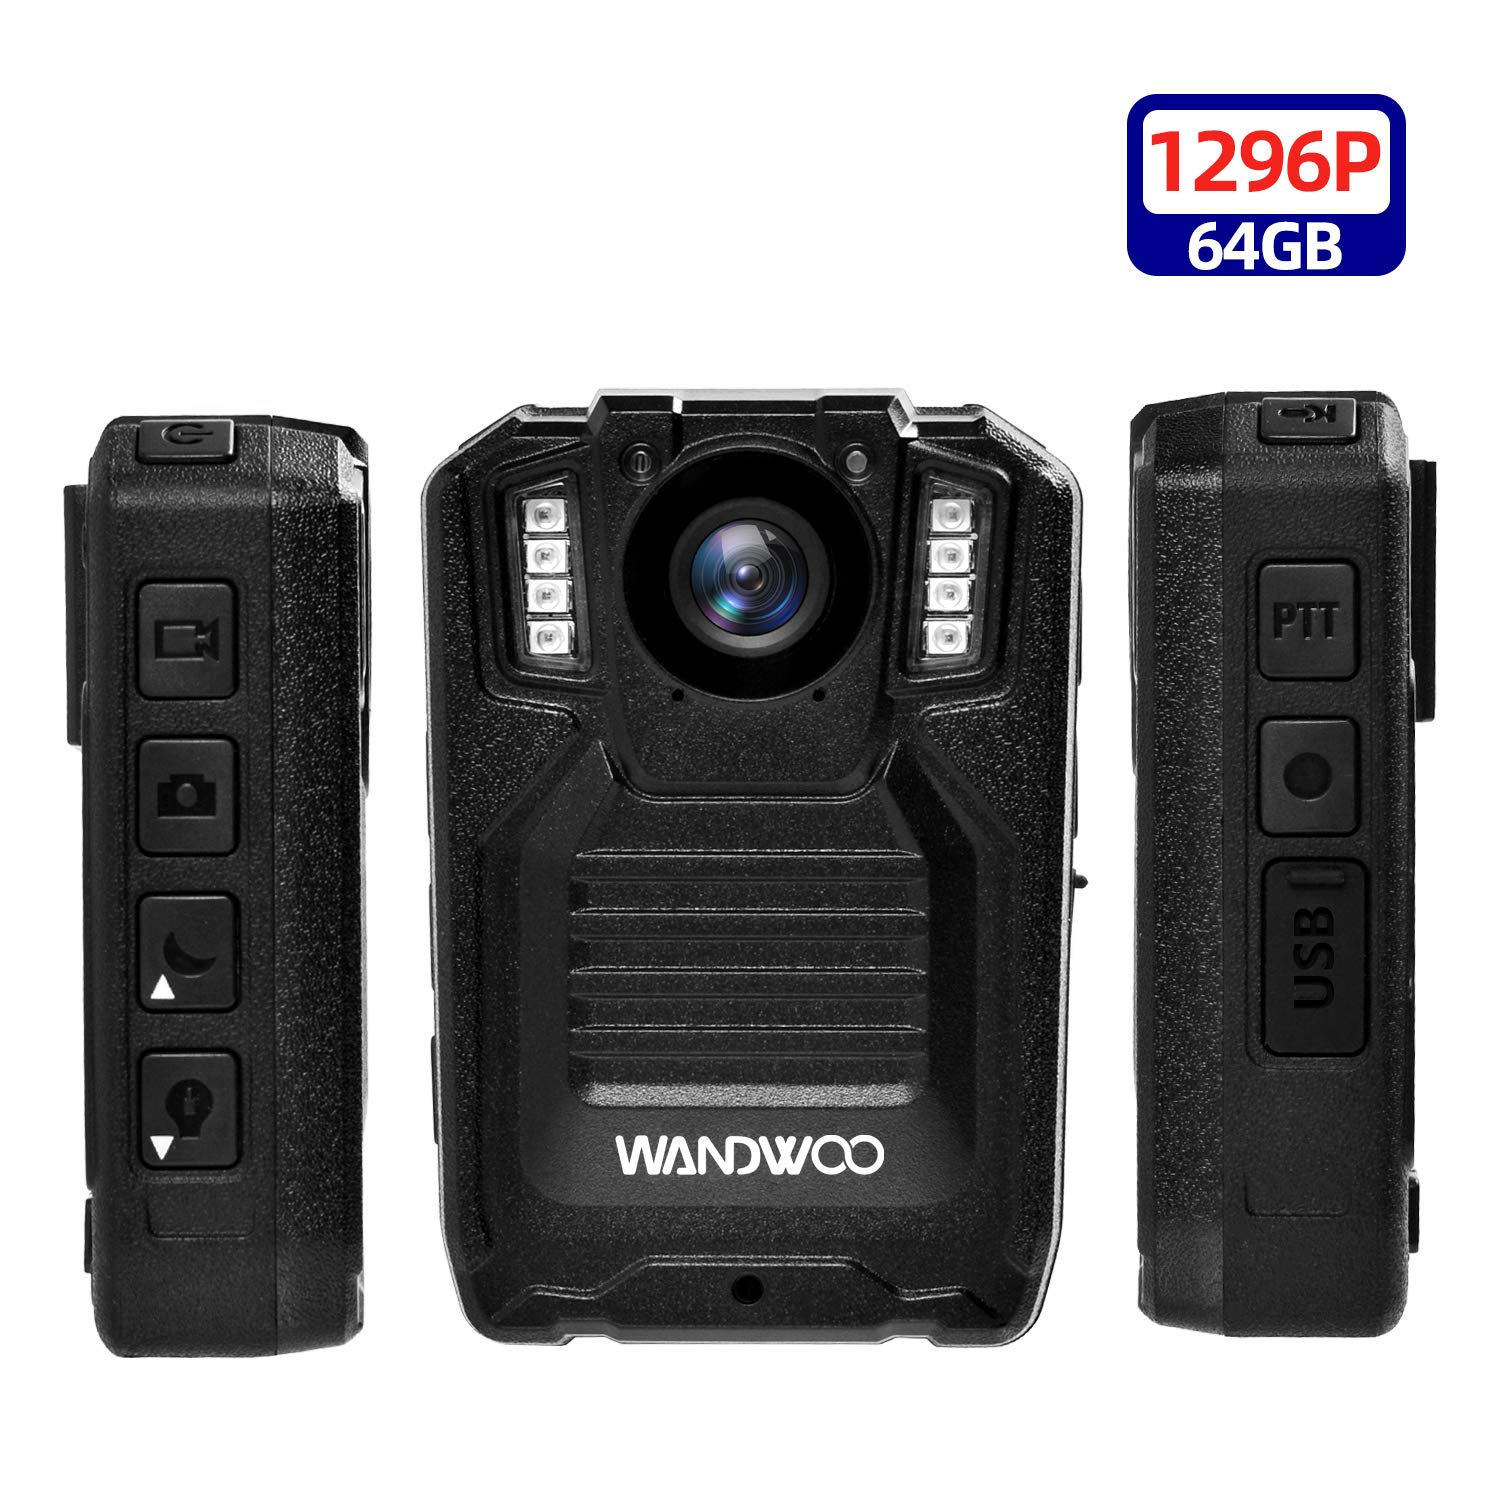 1296P Body Worn Camera for Police, Wandwoo Police Body Camera with 64GB Memory Infrared Night Vision Wide Angle IP66 Waterproof Photo Video Audio Recorder 2inch Display for Police Law Enforcement